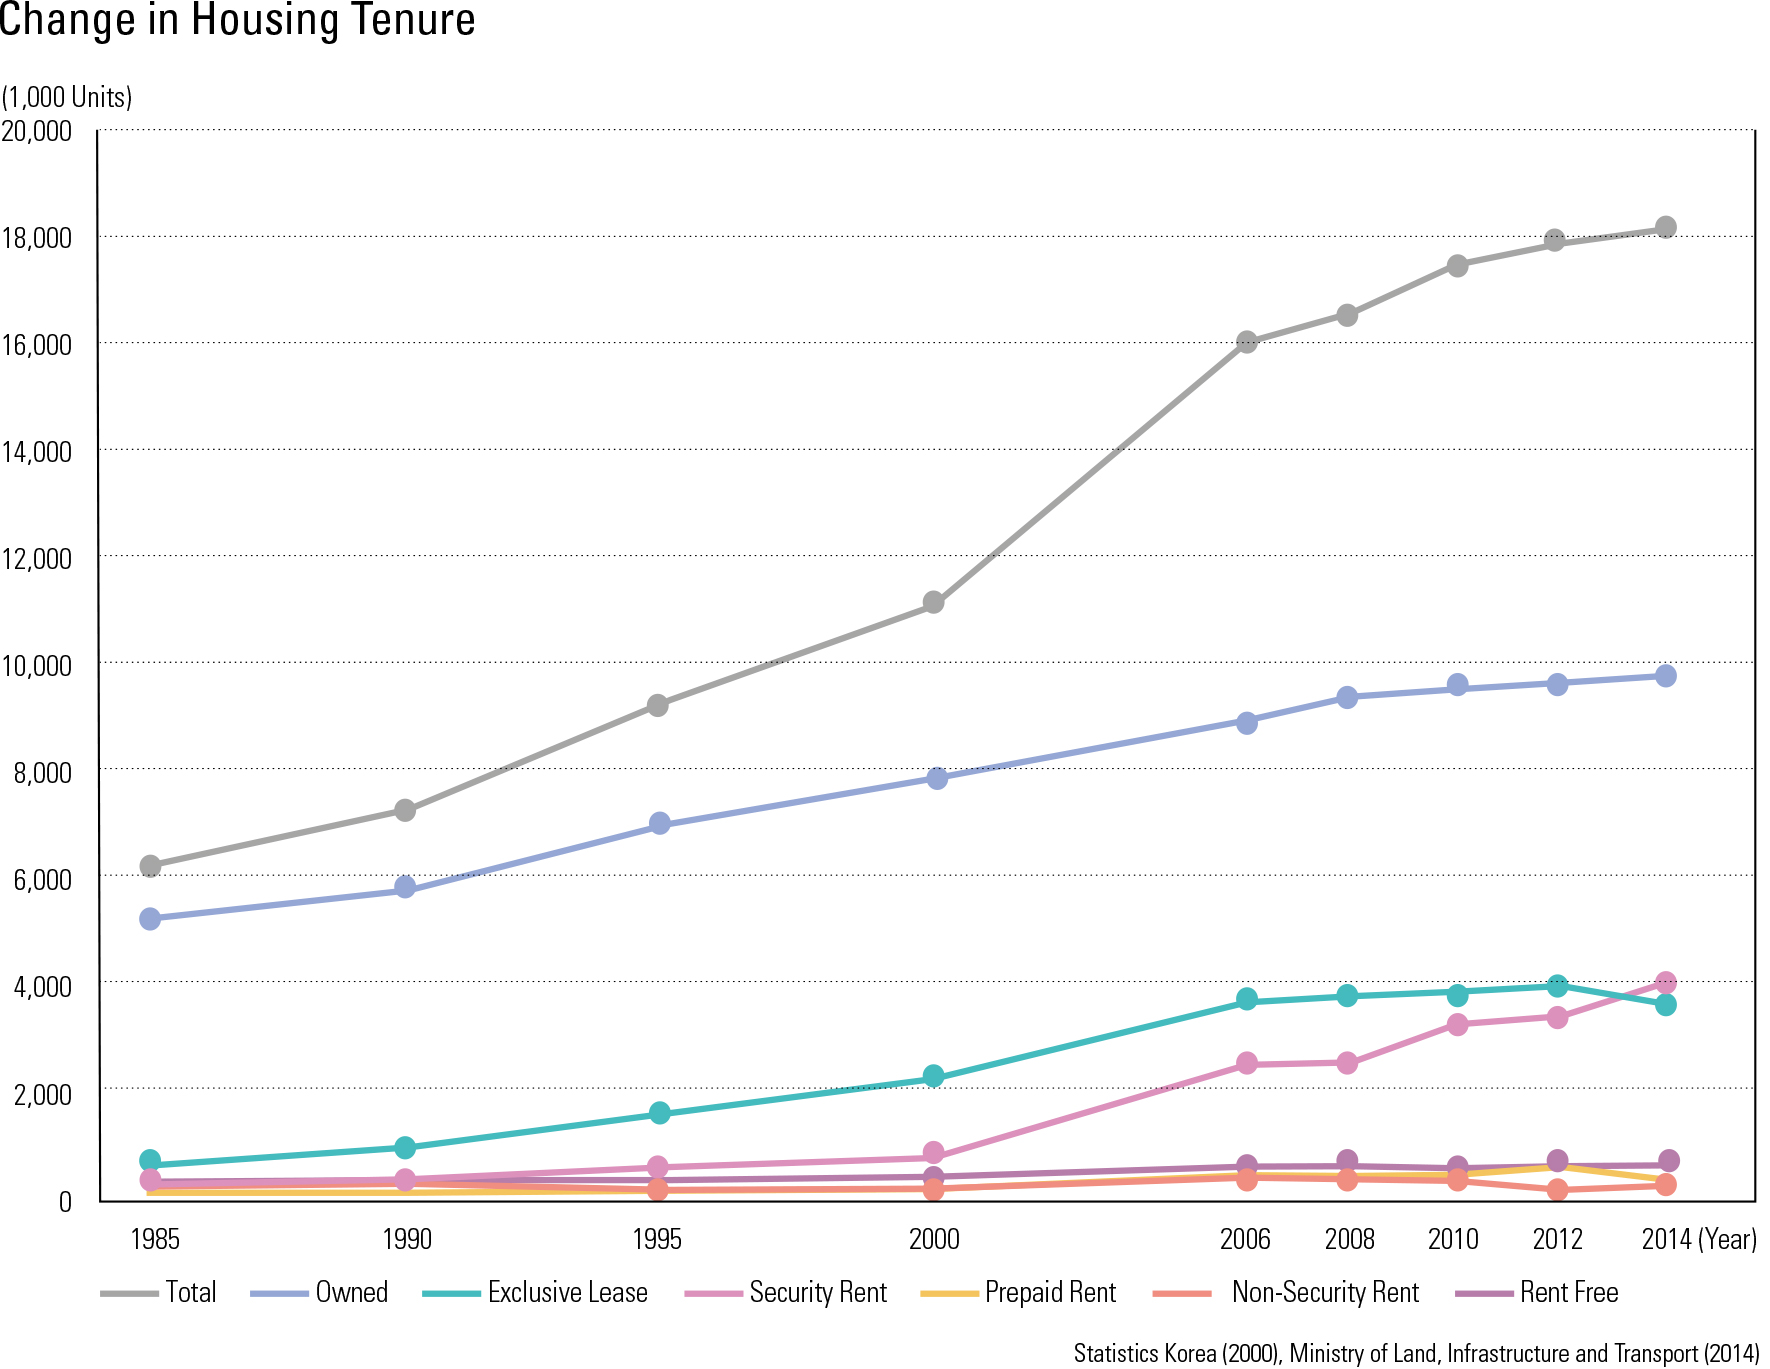 "Change in Housing Tenure<p class=""oz_zoom"" zimg=""http://imagedata.cafe24.com/us_3/us3_77-2_2.jpg""><span style=""font-family:Nanum Myeongjo;""><span style=""font-size:18px;""><span class=""label label-danger"">UPDATE DATA</span></span></p>"